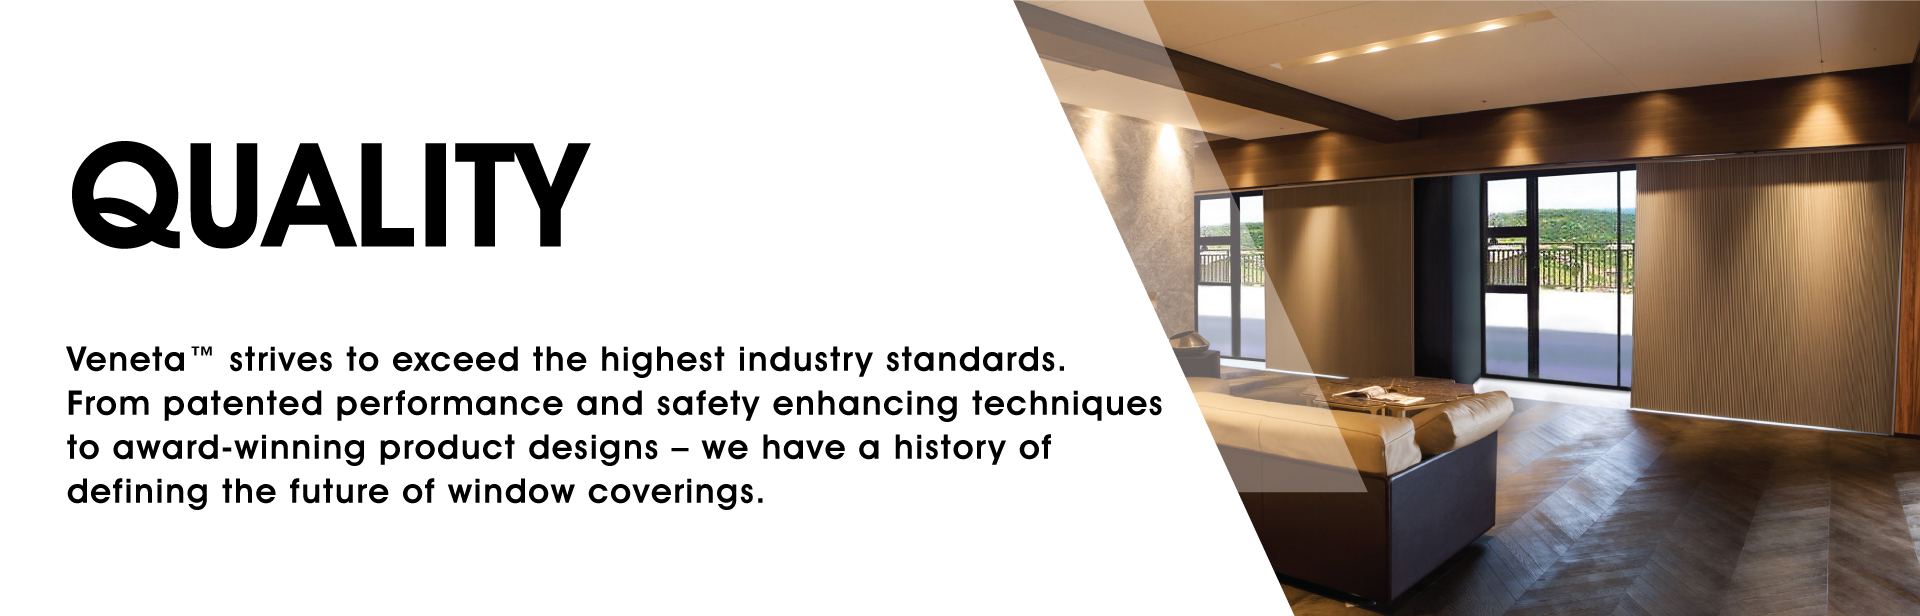 Quality: Veneta strives to exceed the highest standards. From patented performance and safety enhancing techniques to award-winning product designs – we have a history of defining the future of window coverings.